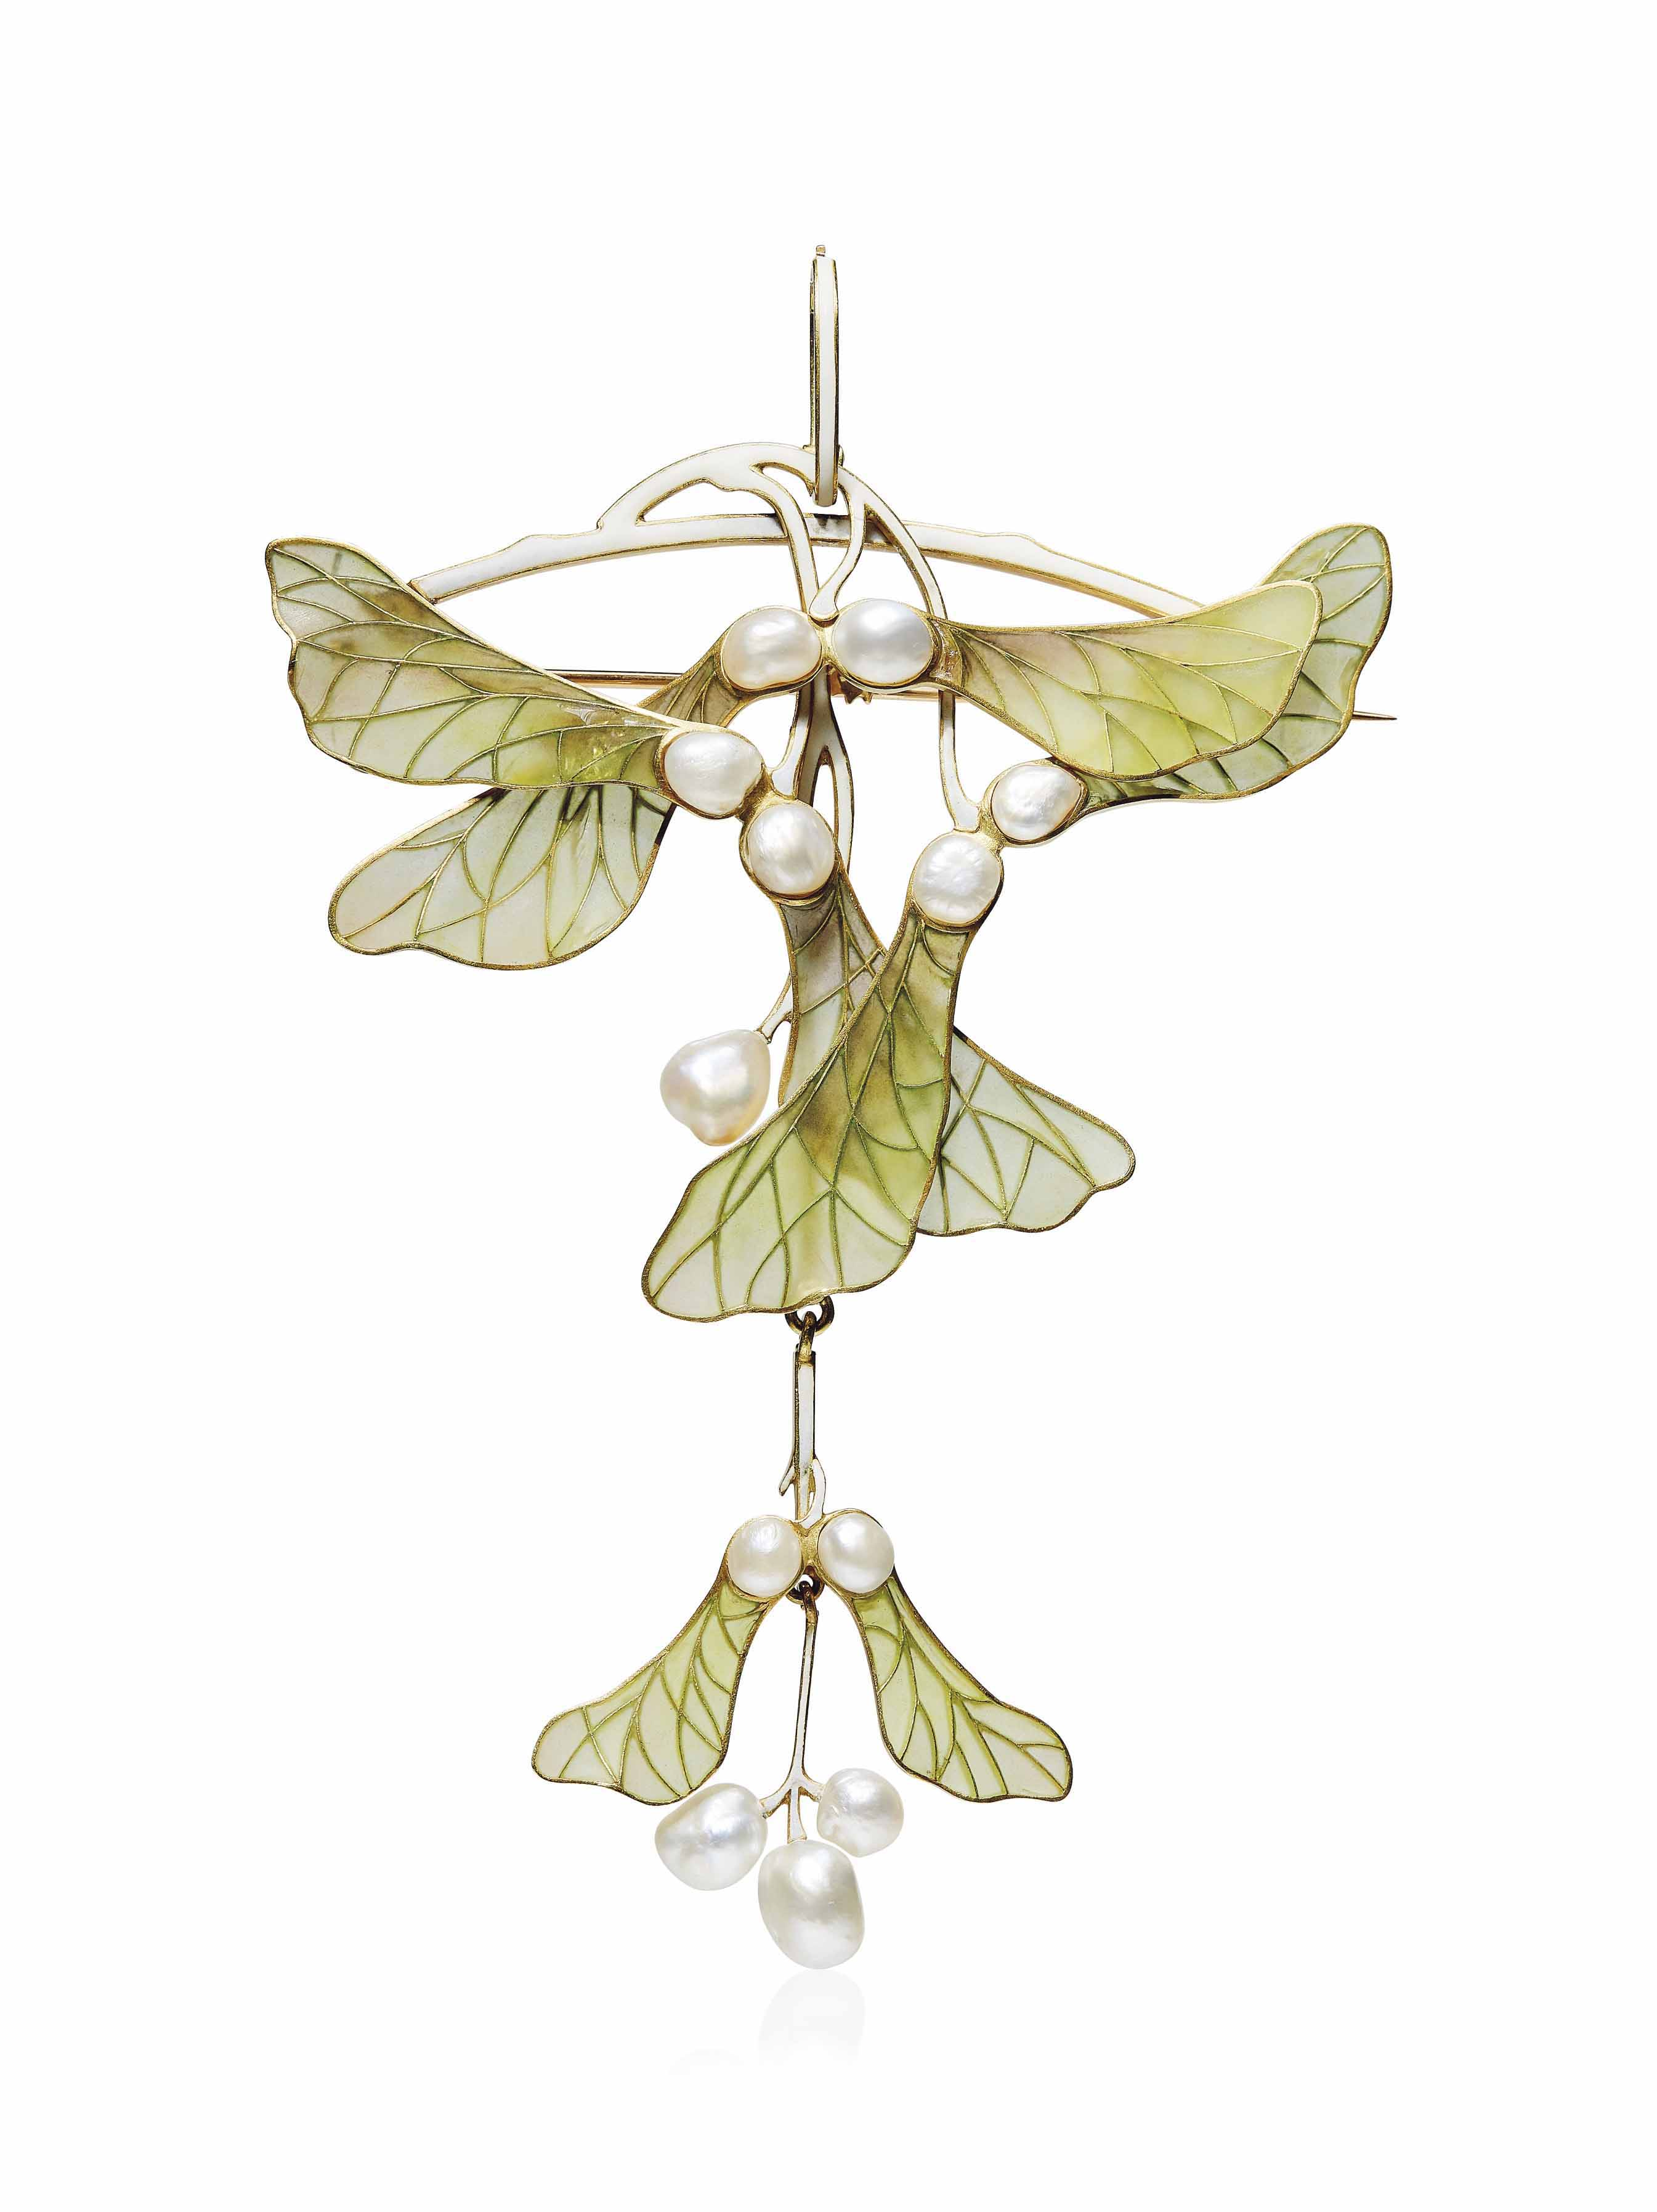 AN ART NOUVEAU ENAMEL AND PEARL PENDANT/BROOCH, BY HENRI VEVER